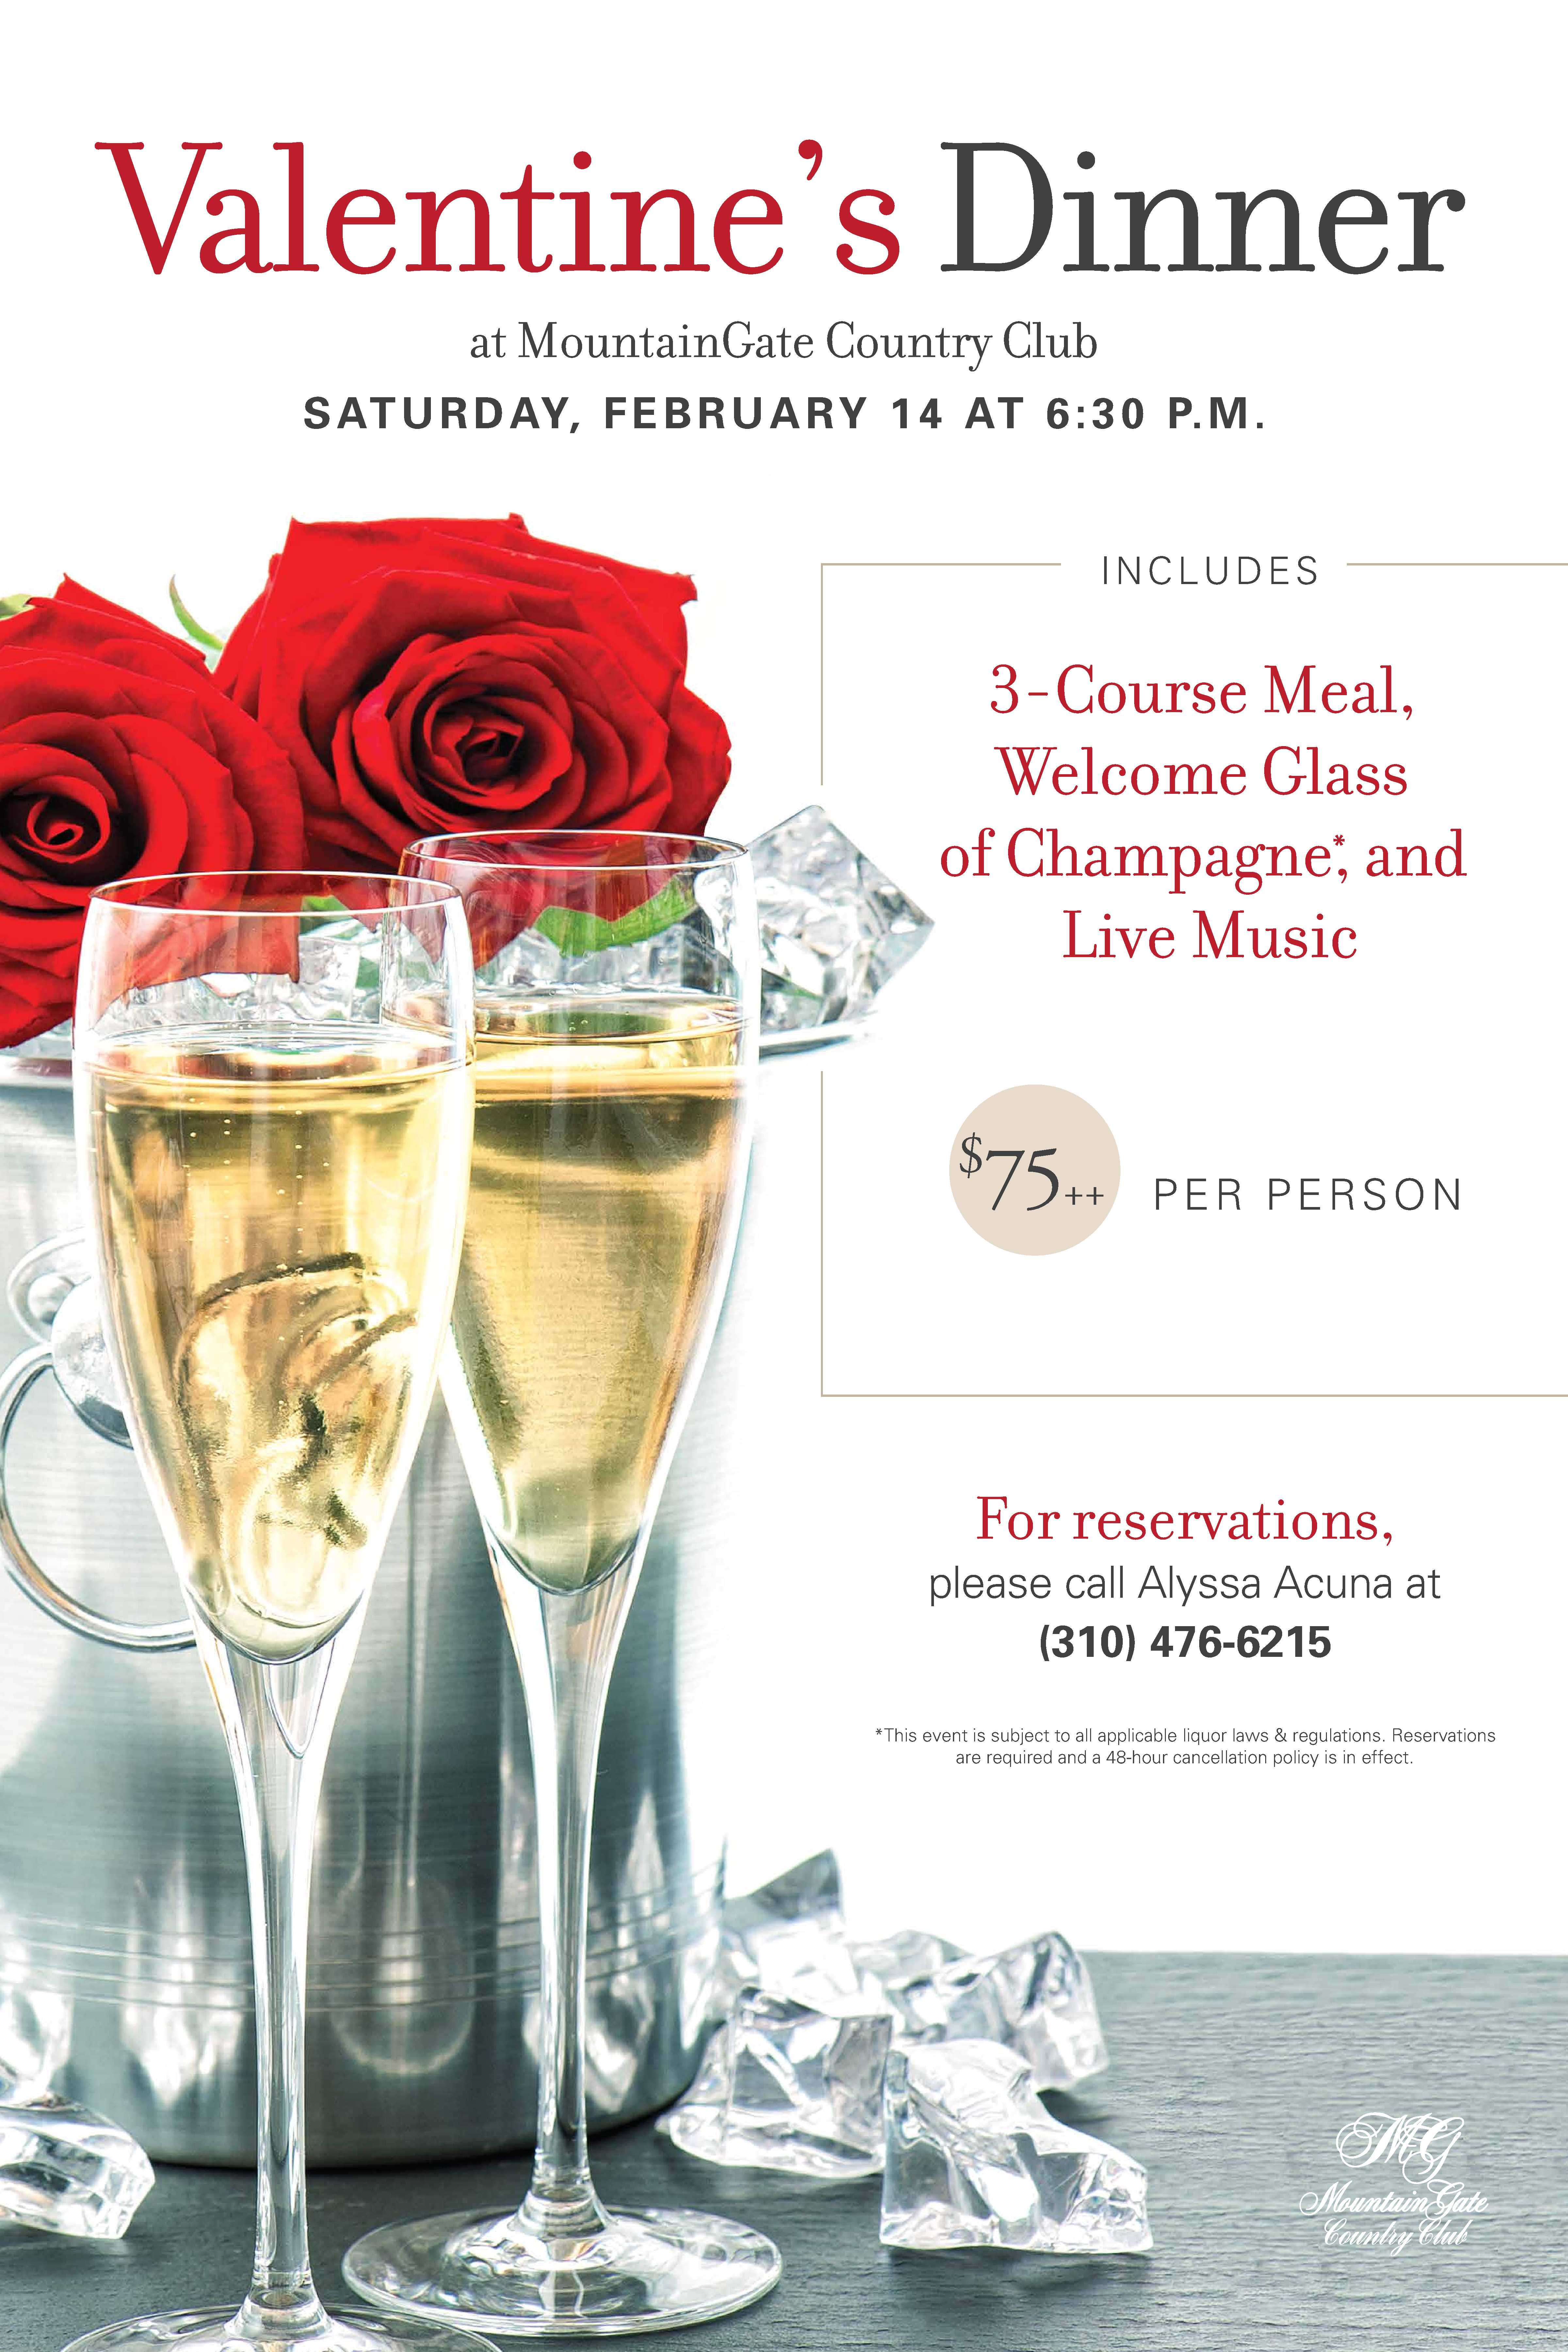 Valentine S Day Dinner At Mountaingate Country Club In Los Angeles Valentine Dinner Valentines Day Dinner Work Event Ideas